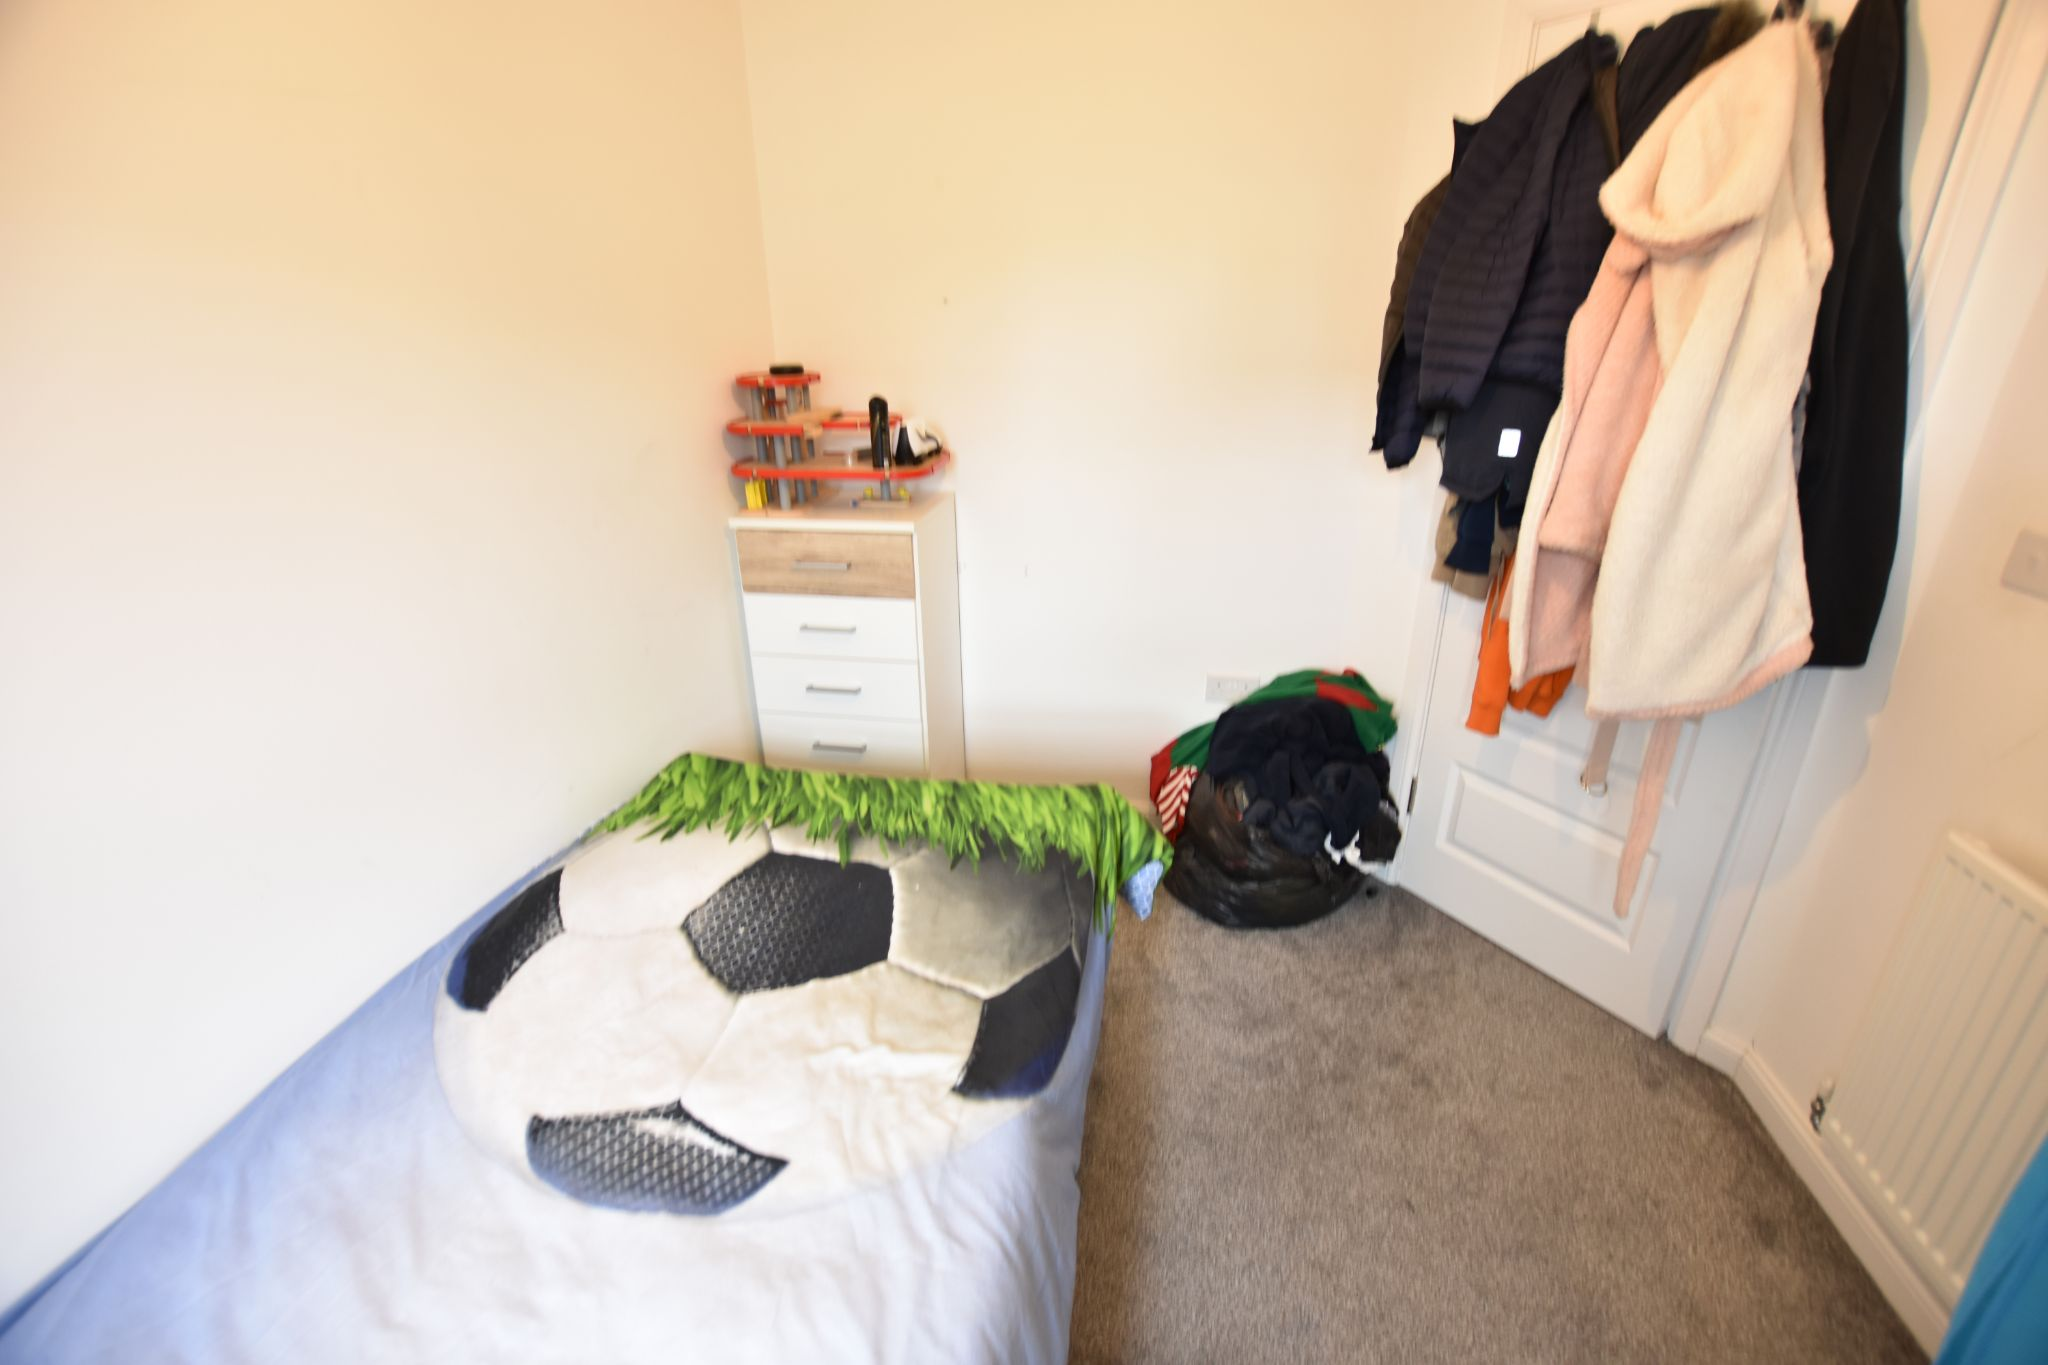 Image 3 of 3 of BEDROOM 2, on Accommodation Comprising for